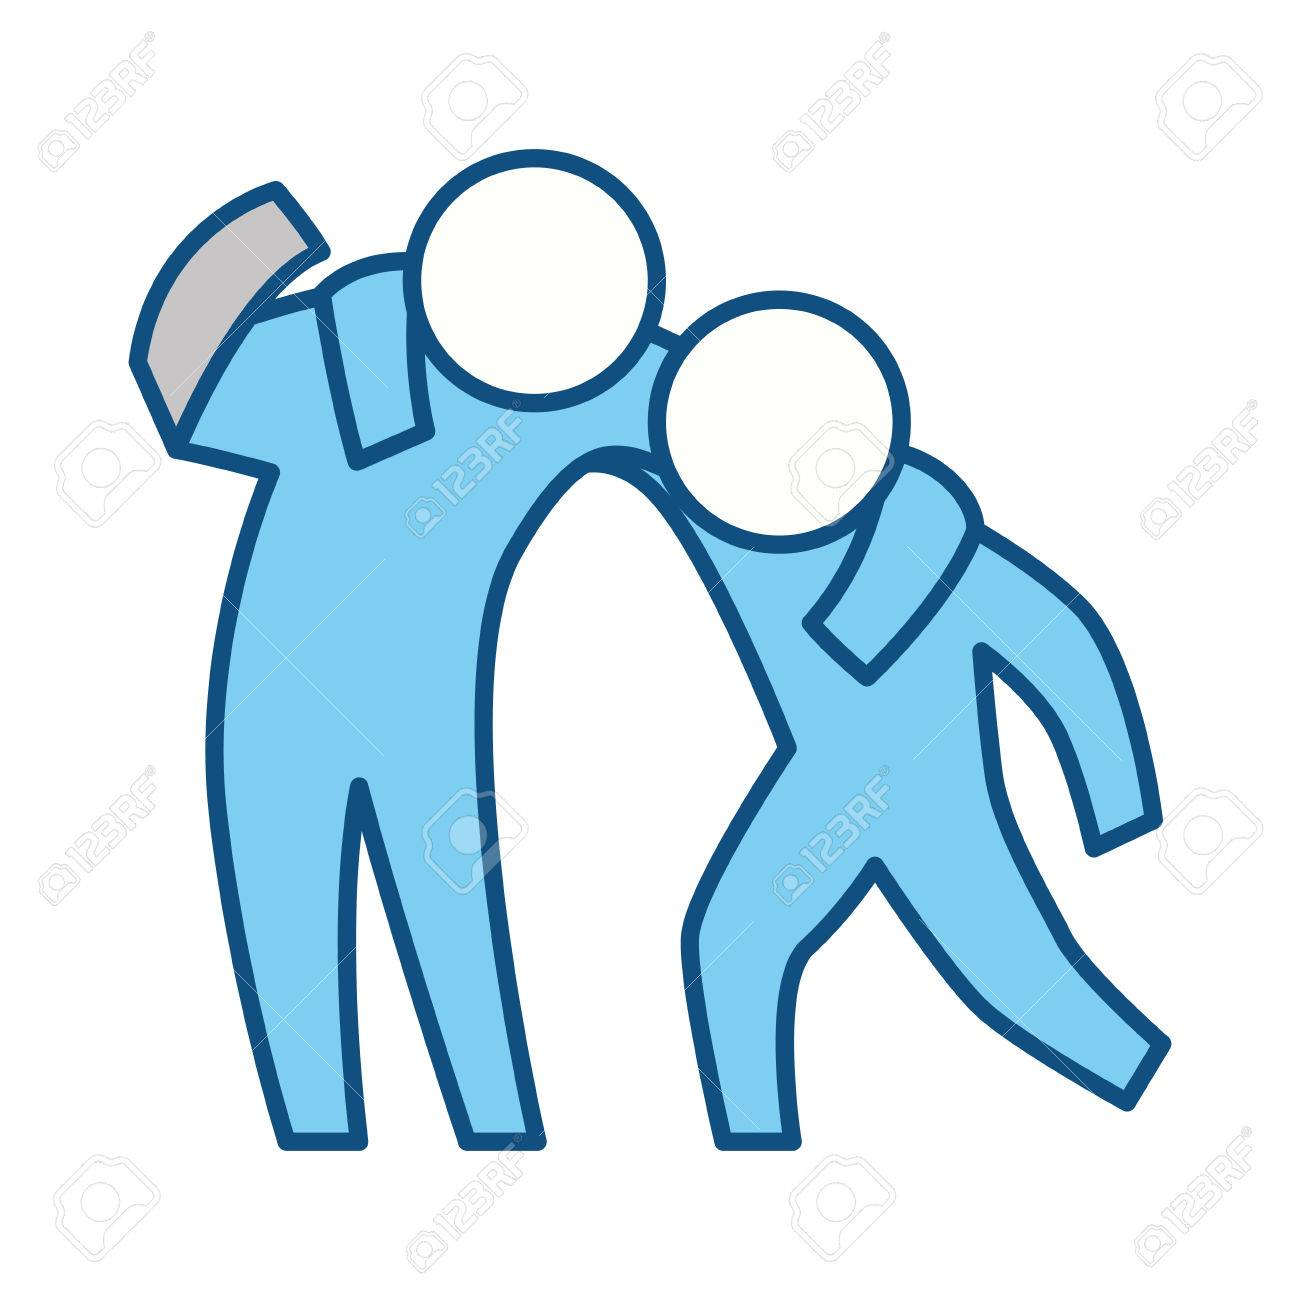 Person helping someone icon vector illustration graphic design.